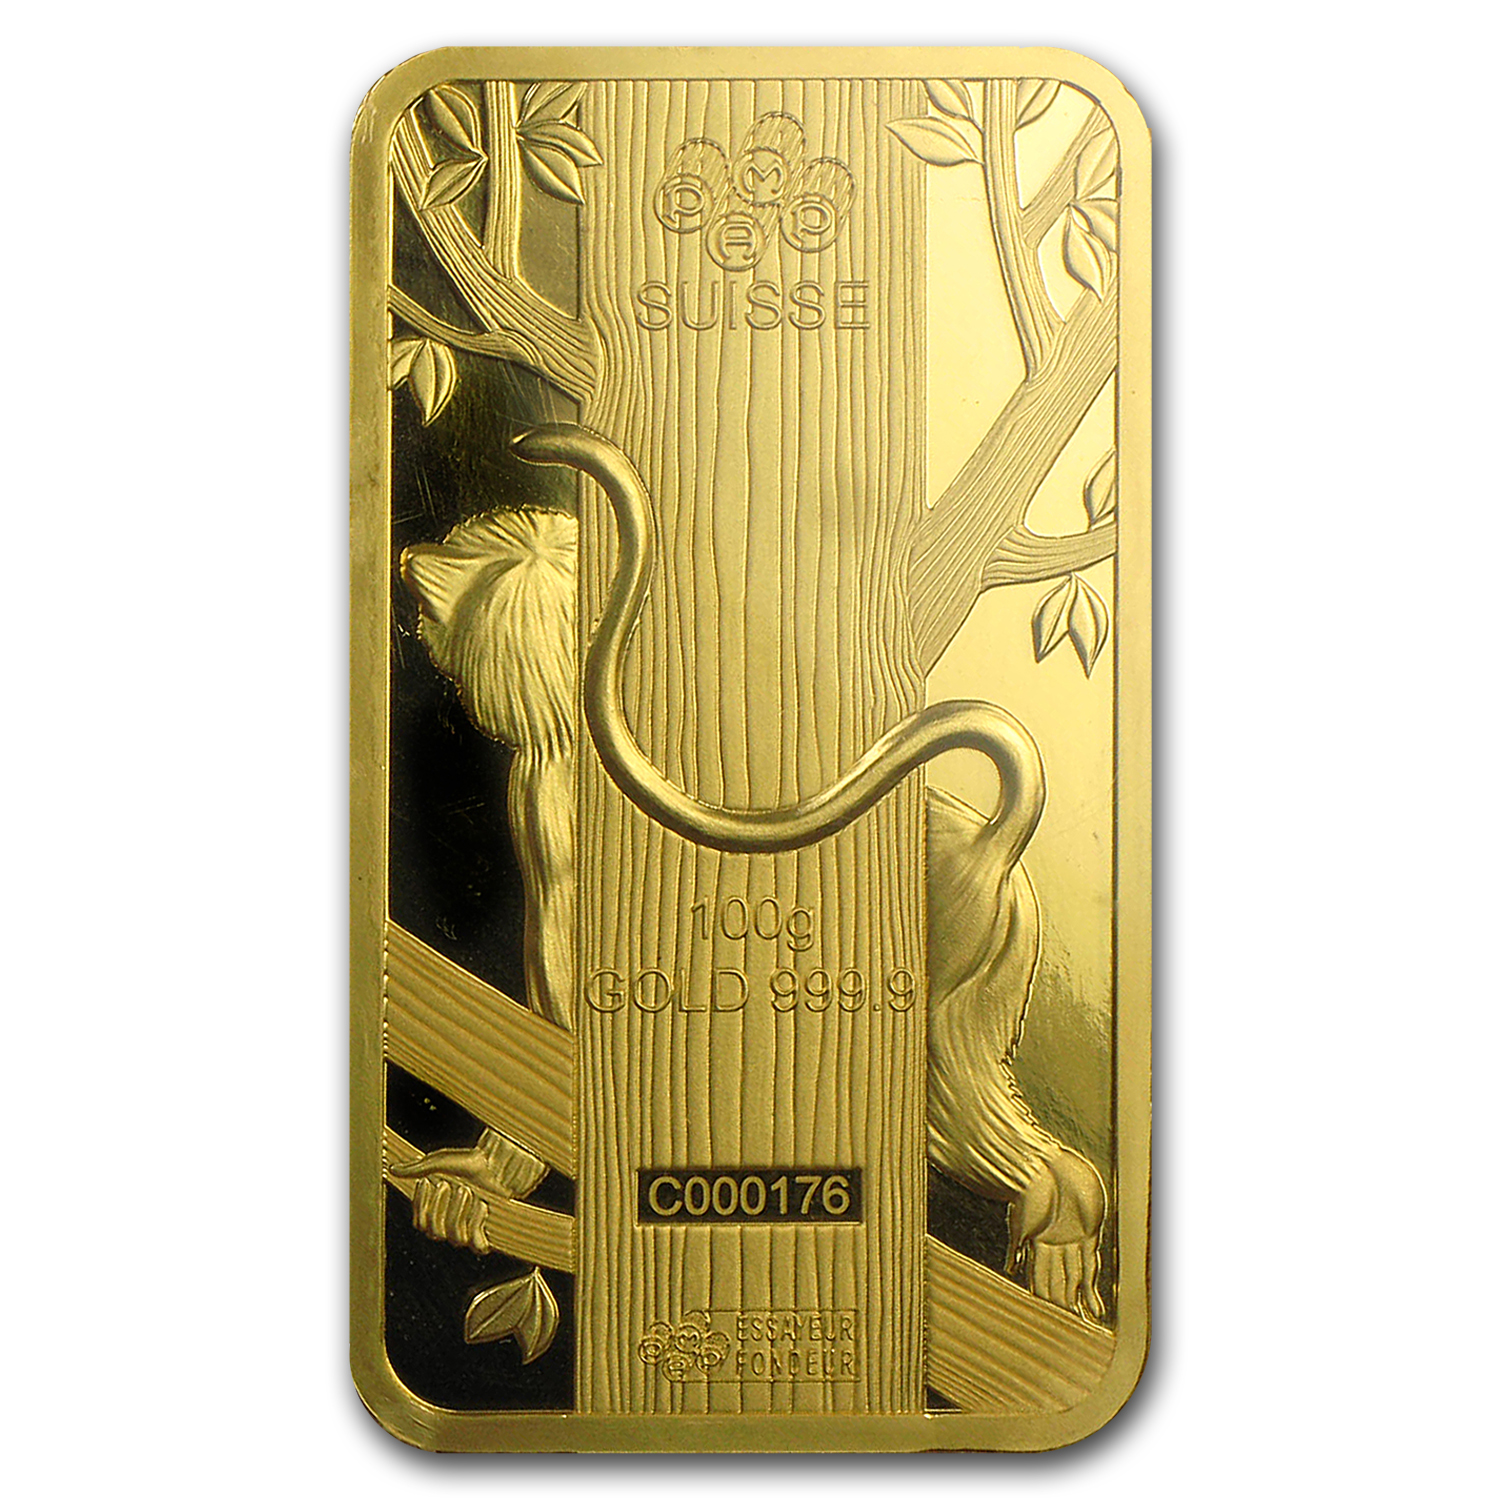 100 gram Gold Bar - PAMP Suisse Year of the Monkey (In Assay)